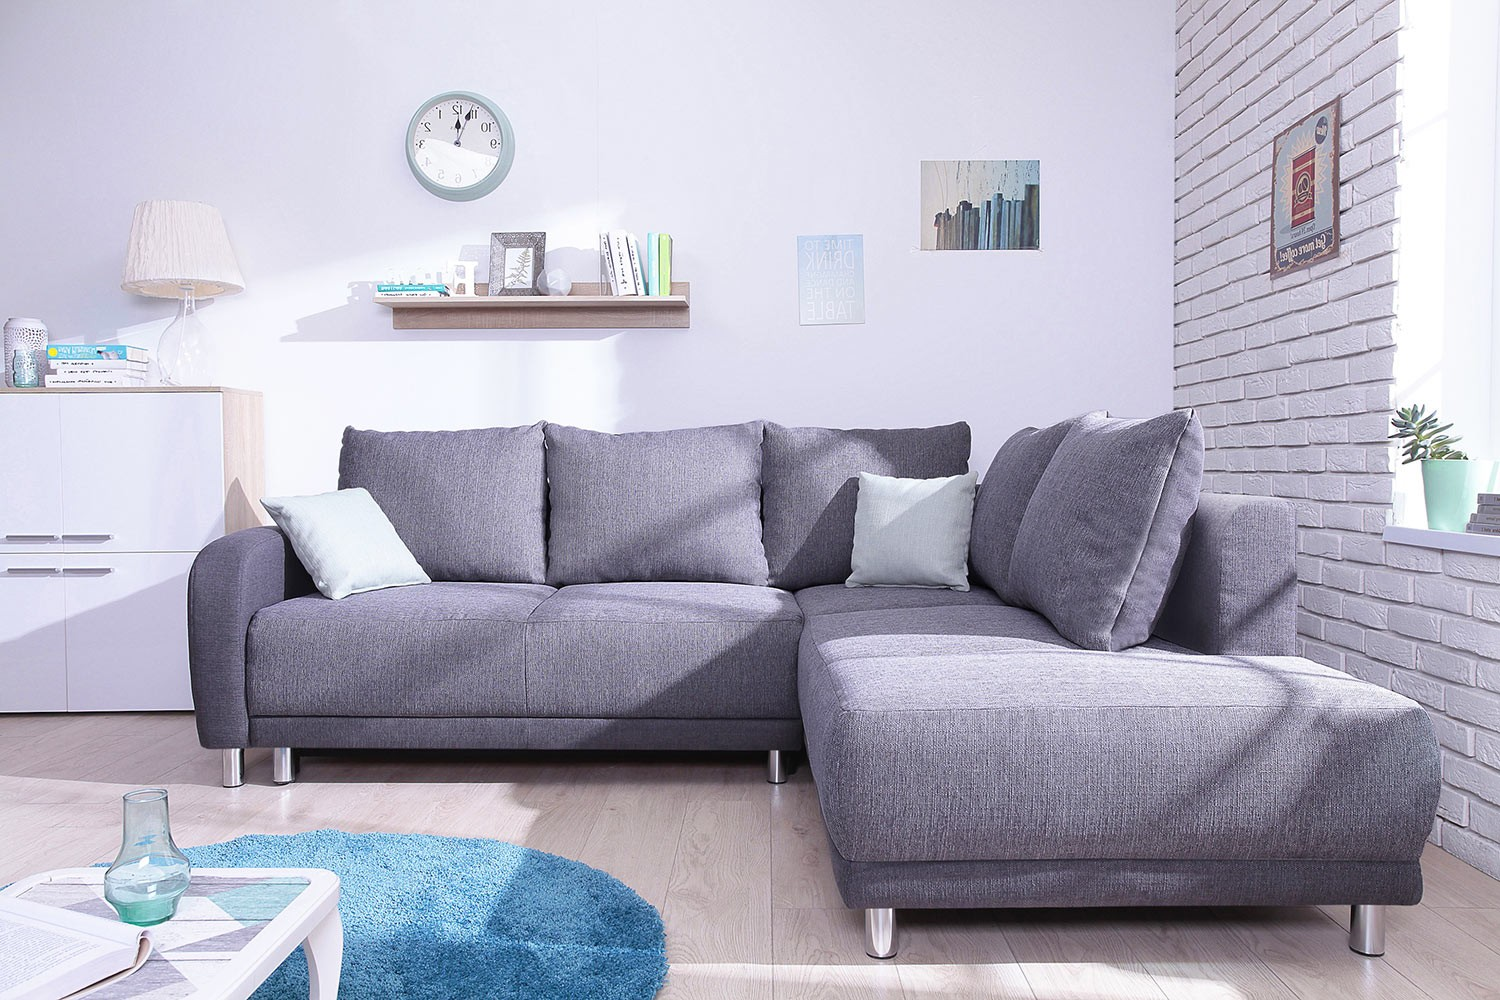 minty grand angle droit canap convertible scandinave bobochic bicolore gris anthracite - Canape Angle Gris Anthracite